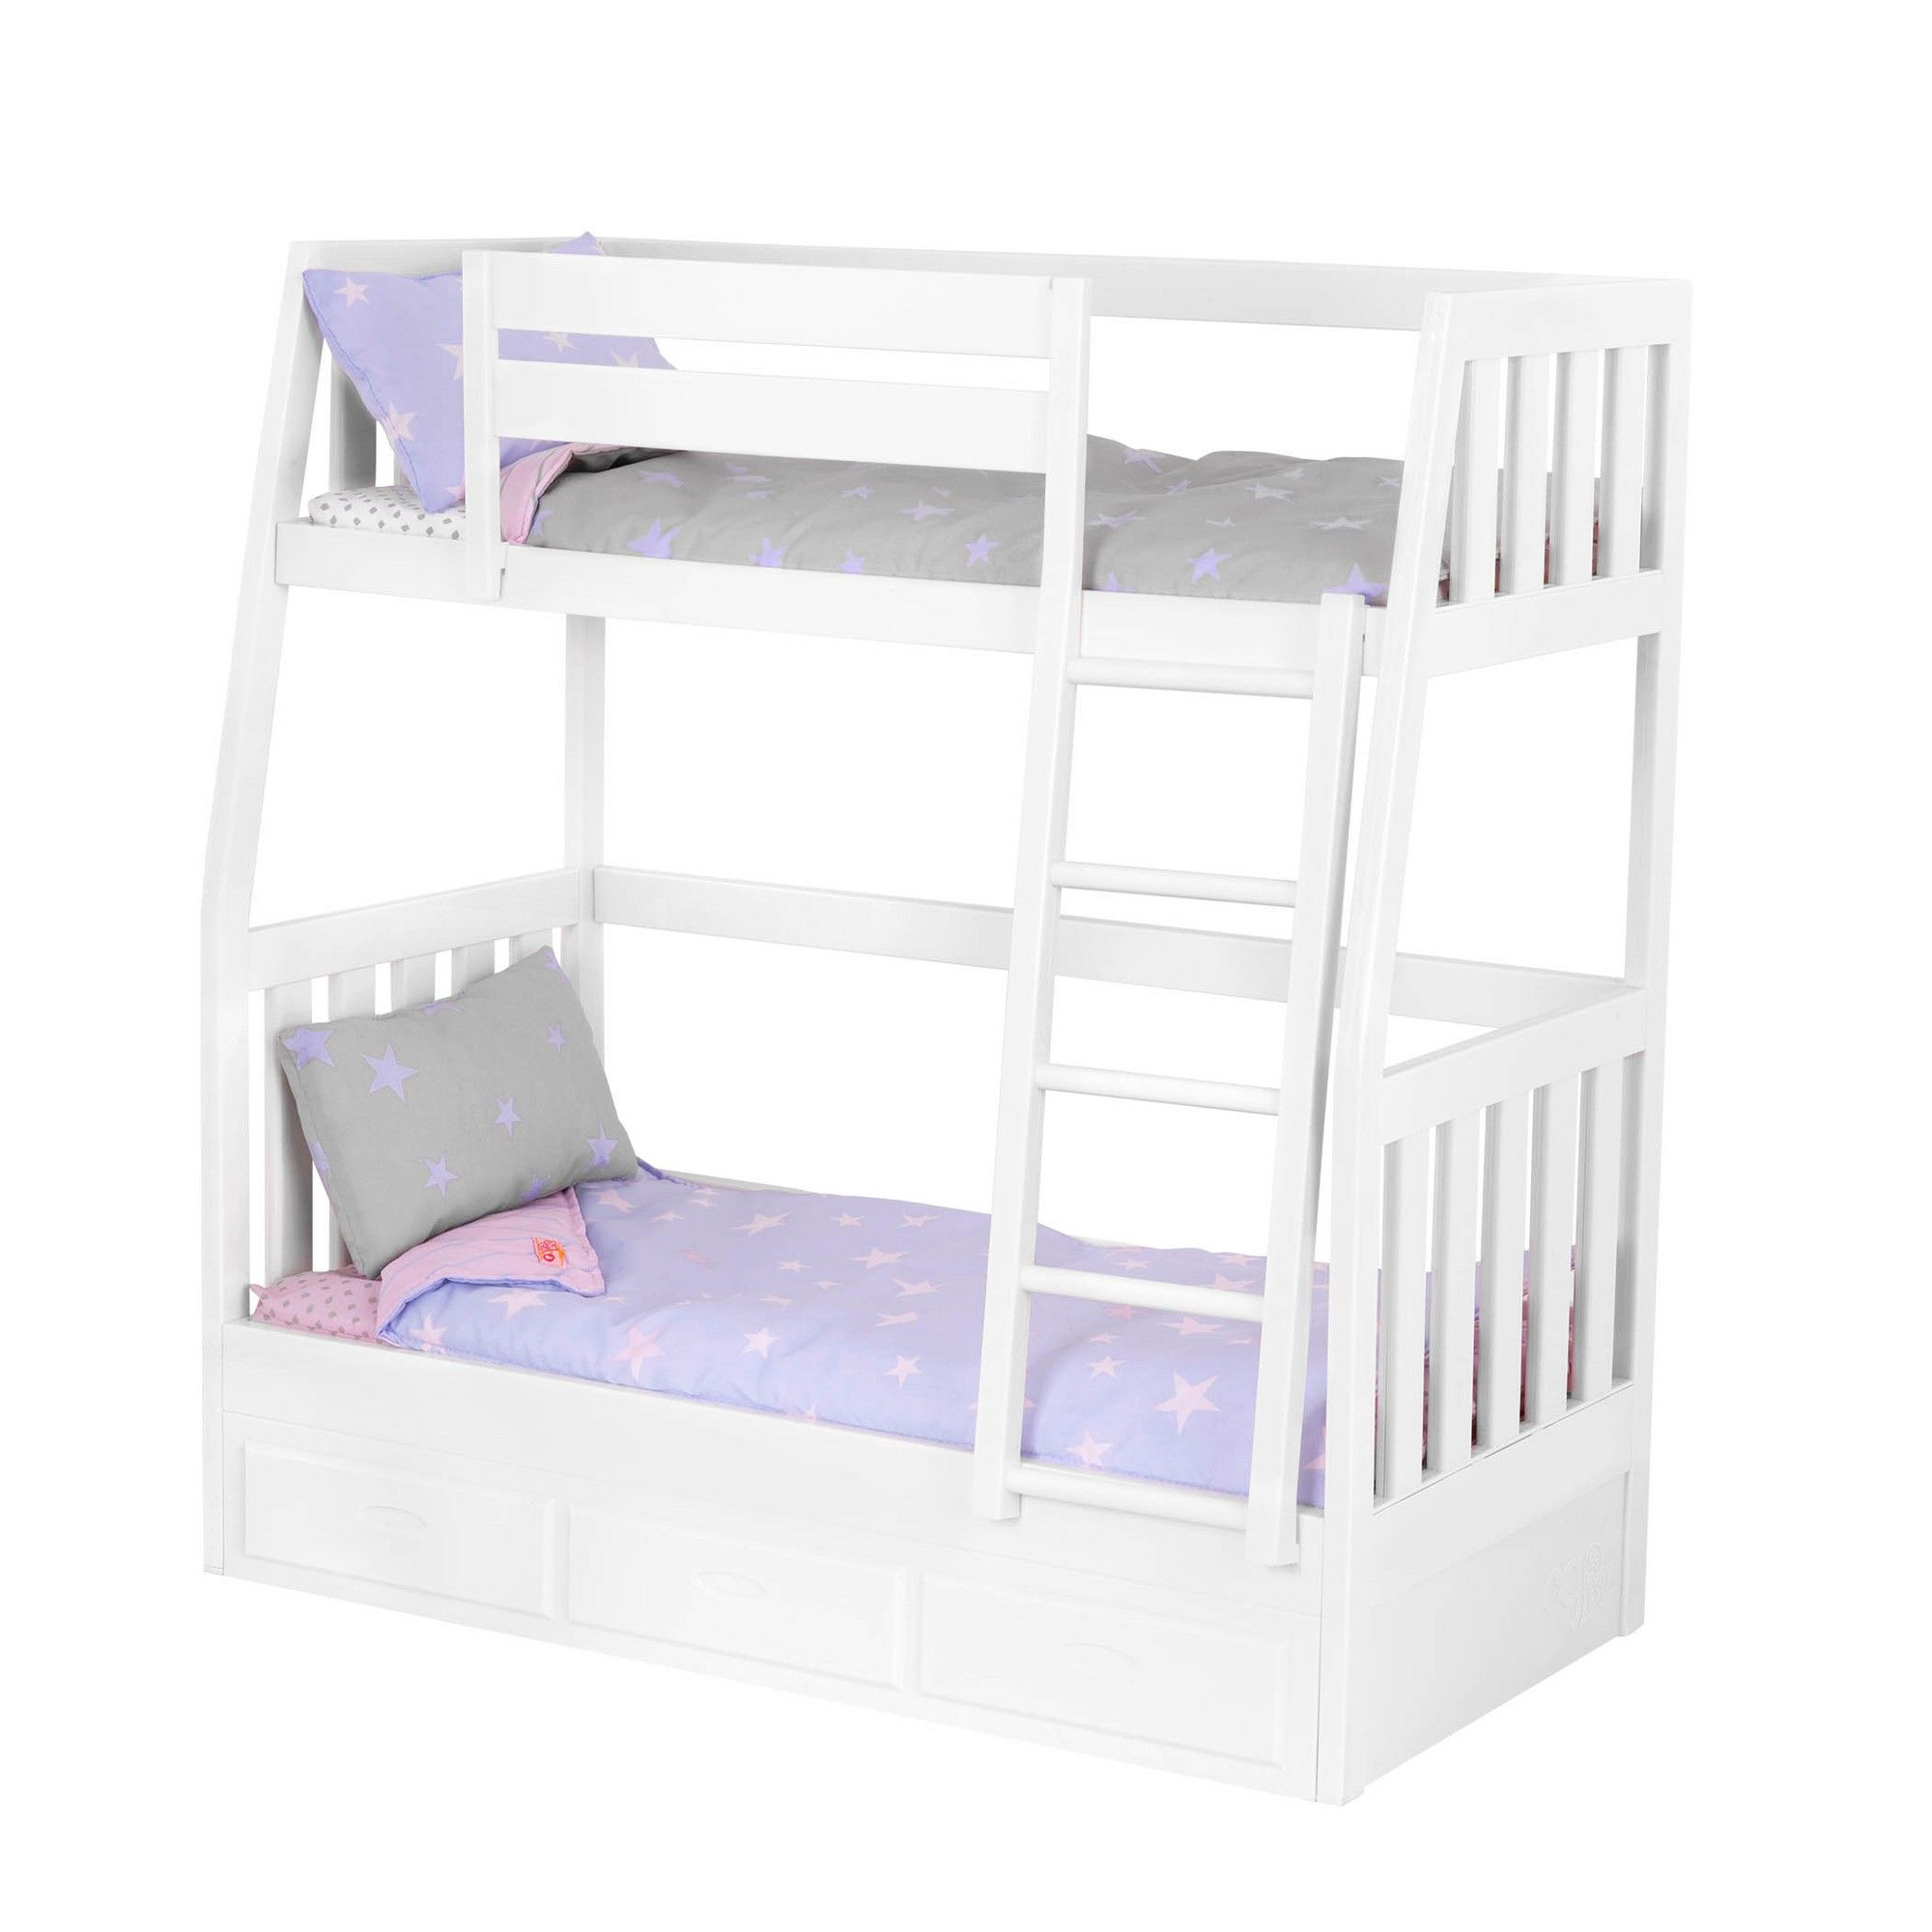 Our Generation Bunk Bed Doll Accessories Doll Bunk Beds American Girl Doll Bed American Girl Beds